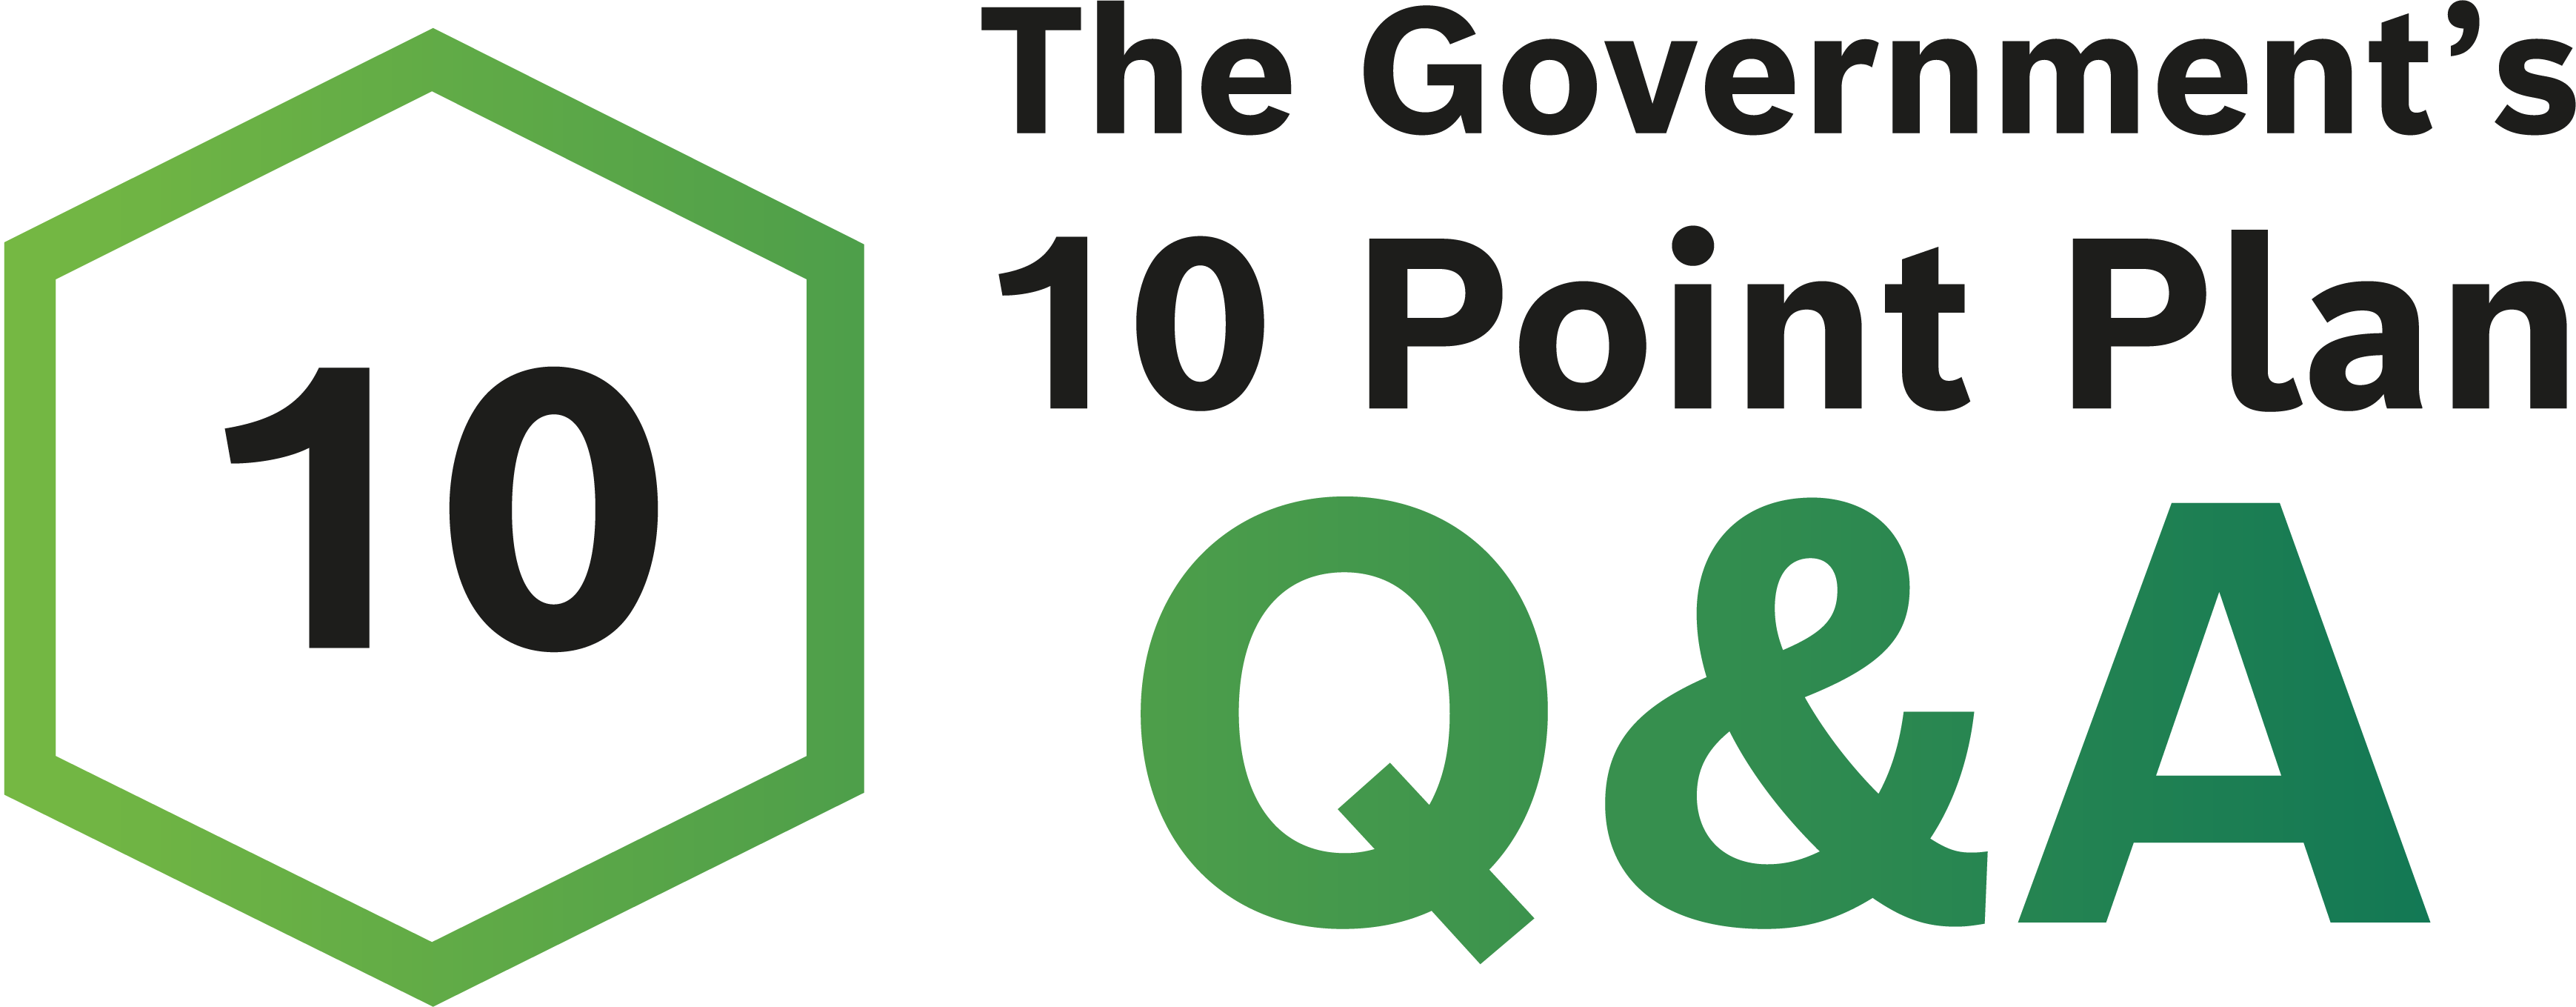 10 point green plan